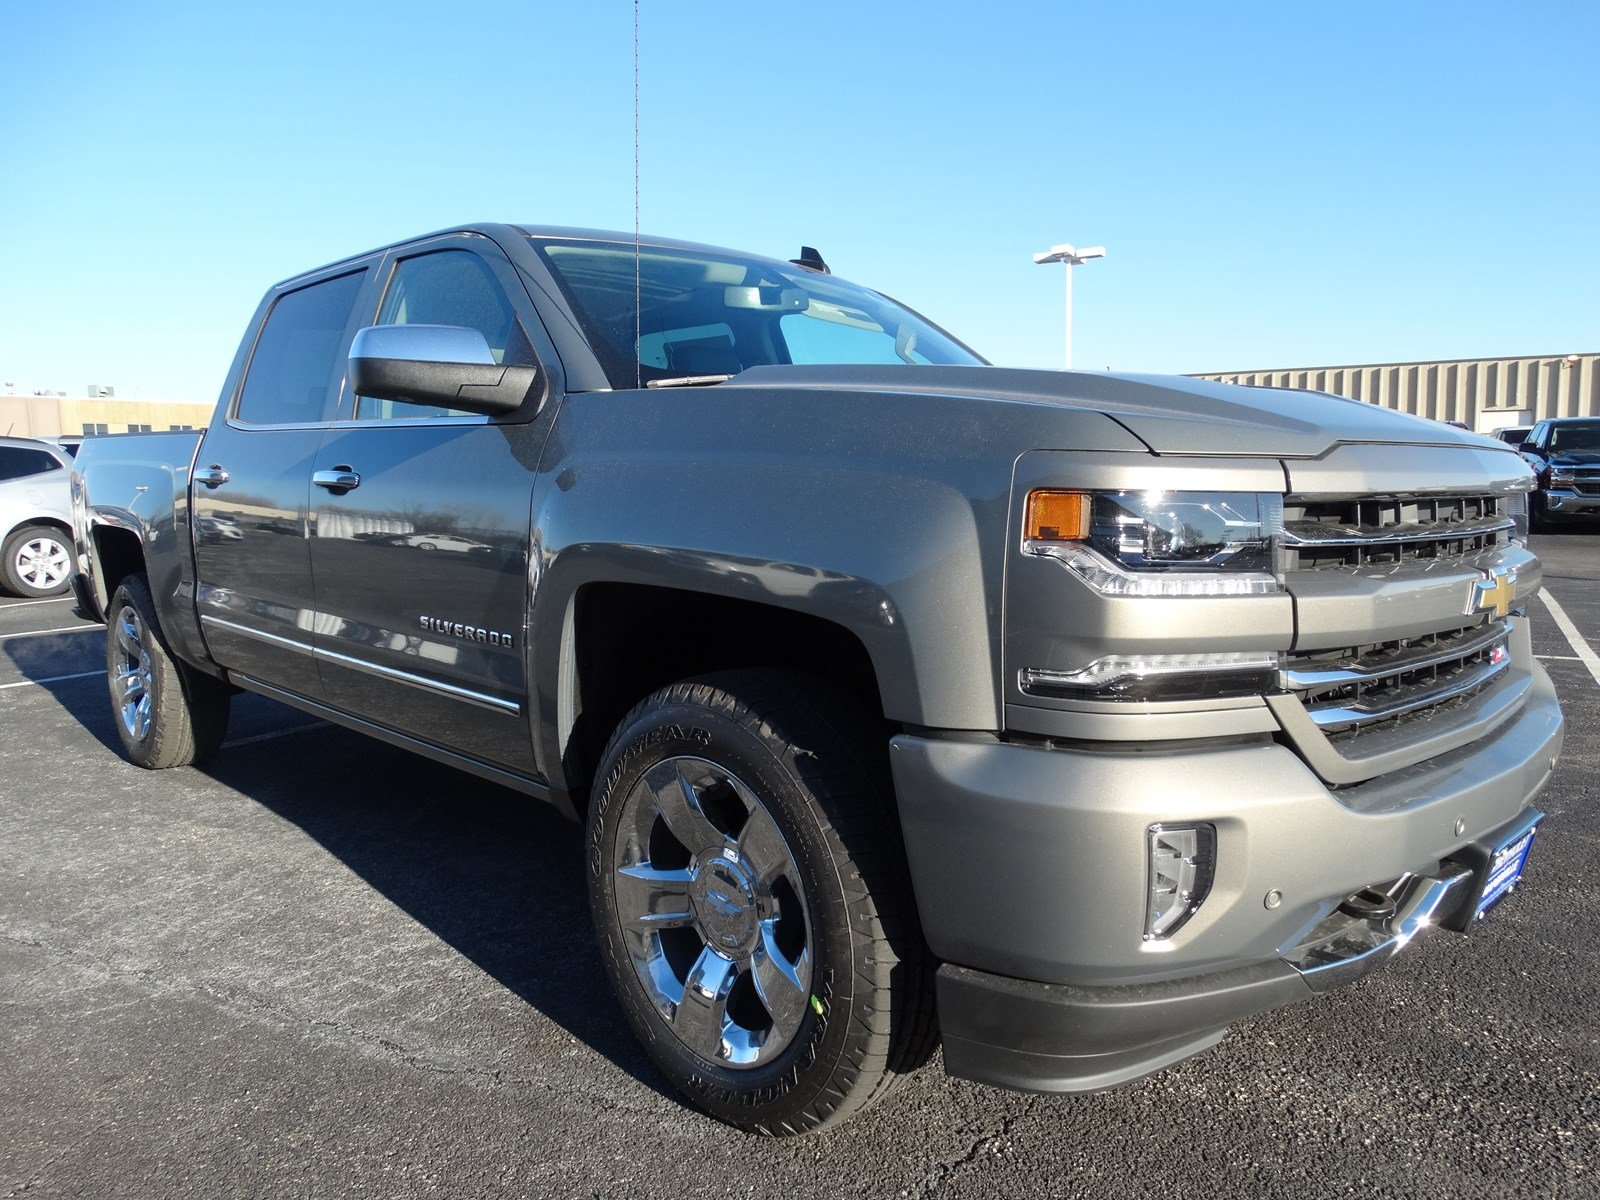 new 2017 chevrolet silverado 1500 ltz crew cab pickup in naperville t6259 chevrolet of naperville. Black Bedroom Furniture Sets. Home Design Ideas